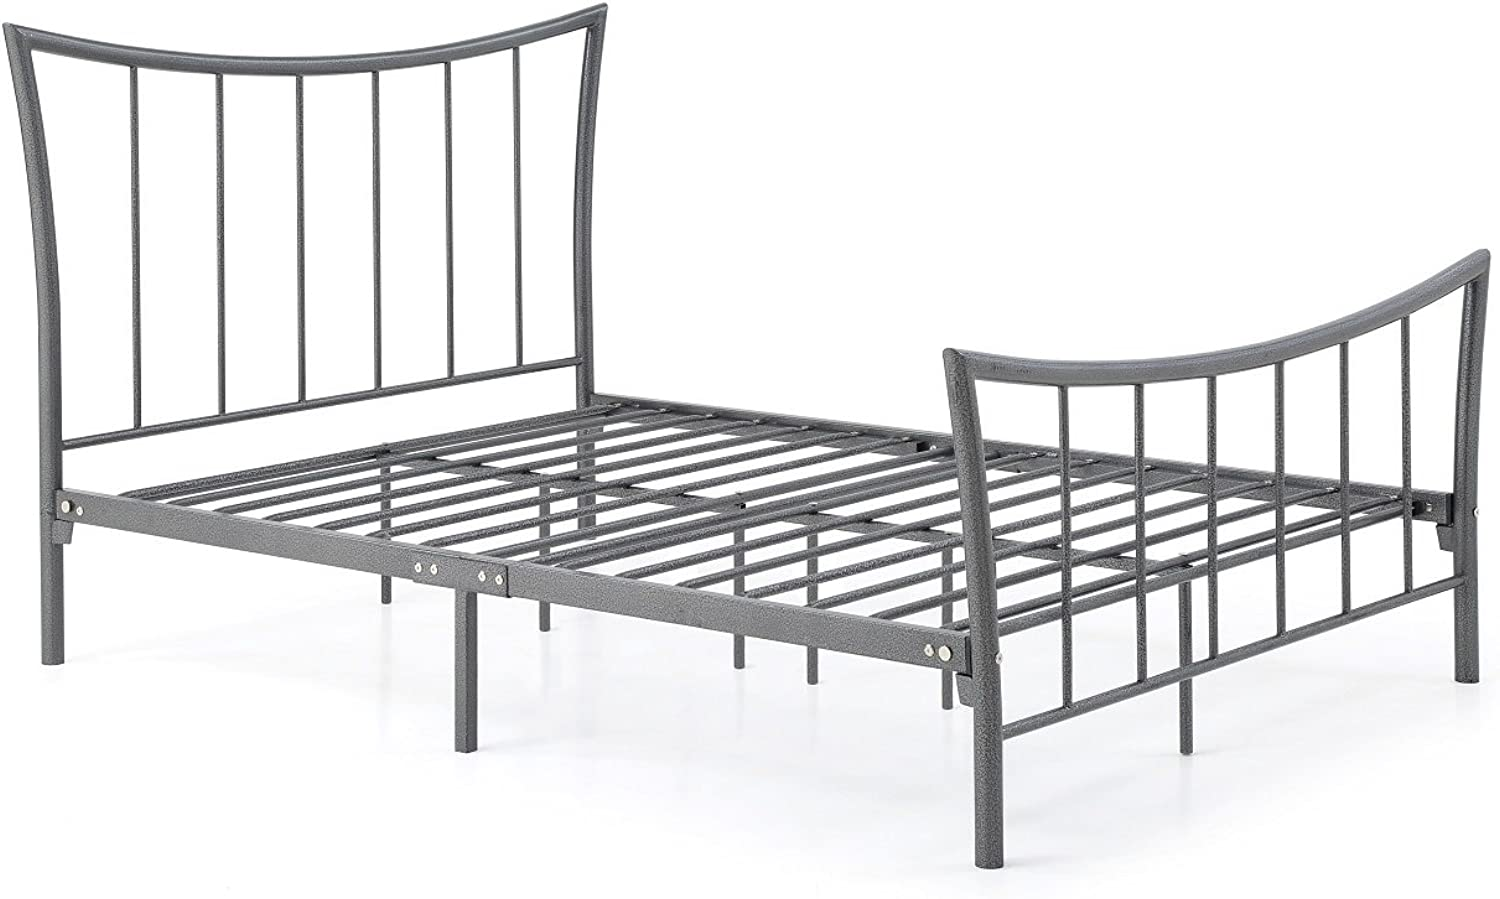 Hodedah HI920 T Charcoal Complete Metal Bed with Headboard, Footboard, Slats and Rails, Twin Size, Charcoal